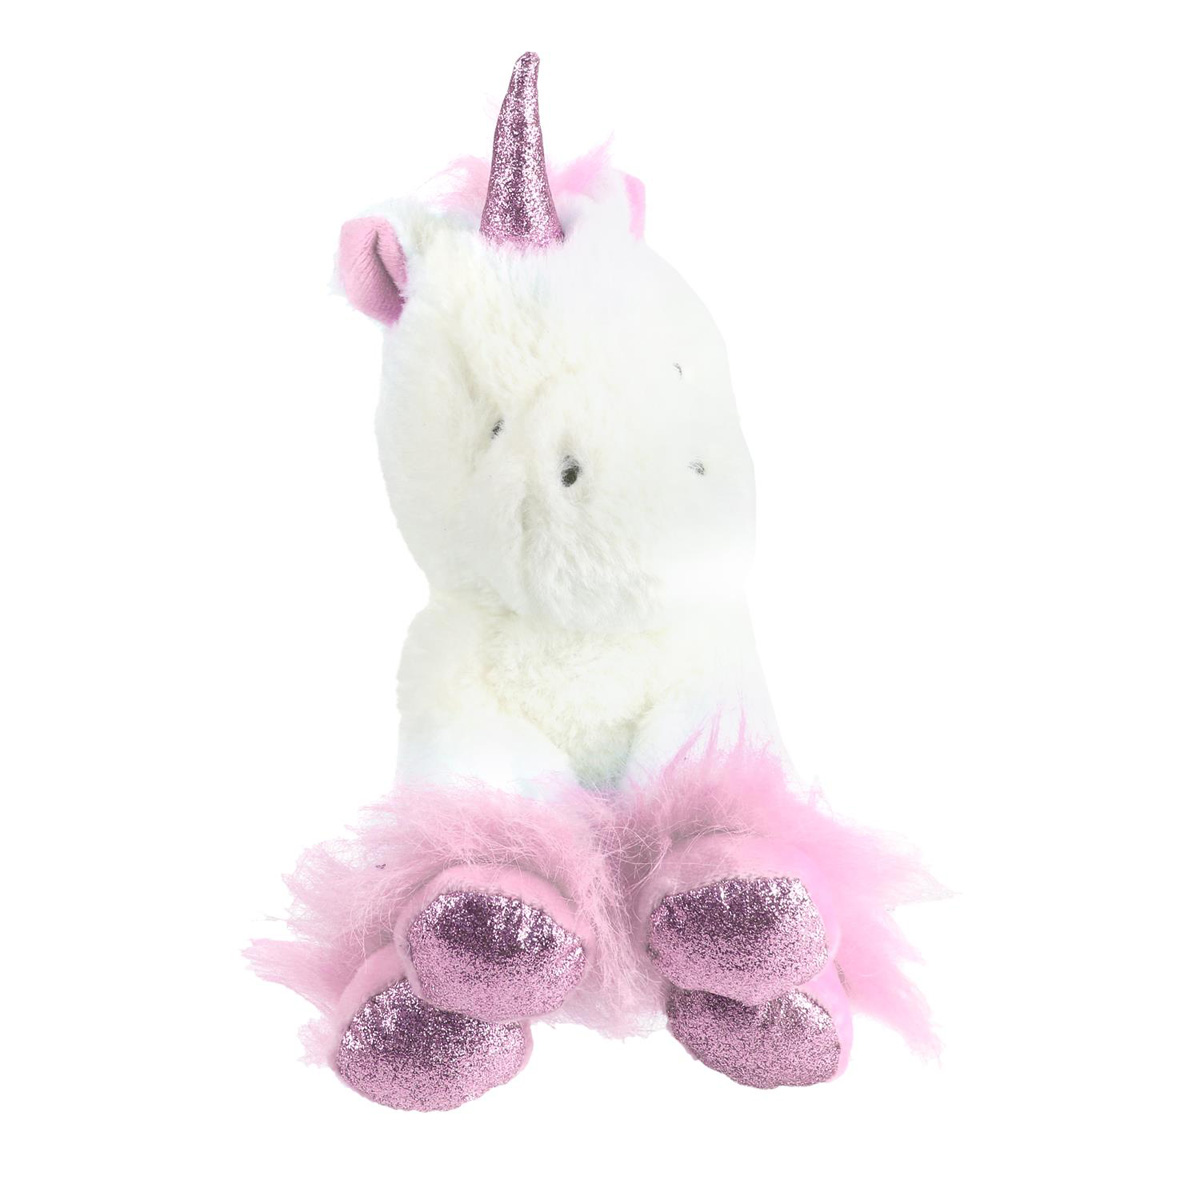 Peluche design \'Licorne My Unicorn\' rose blanc - 20 cm - [Q4440]